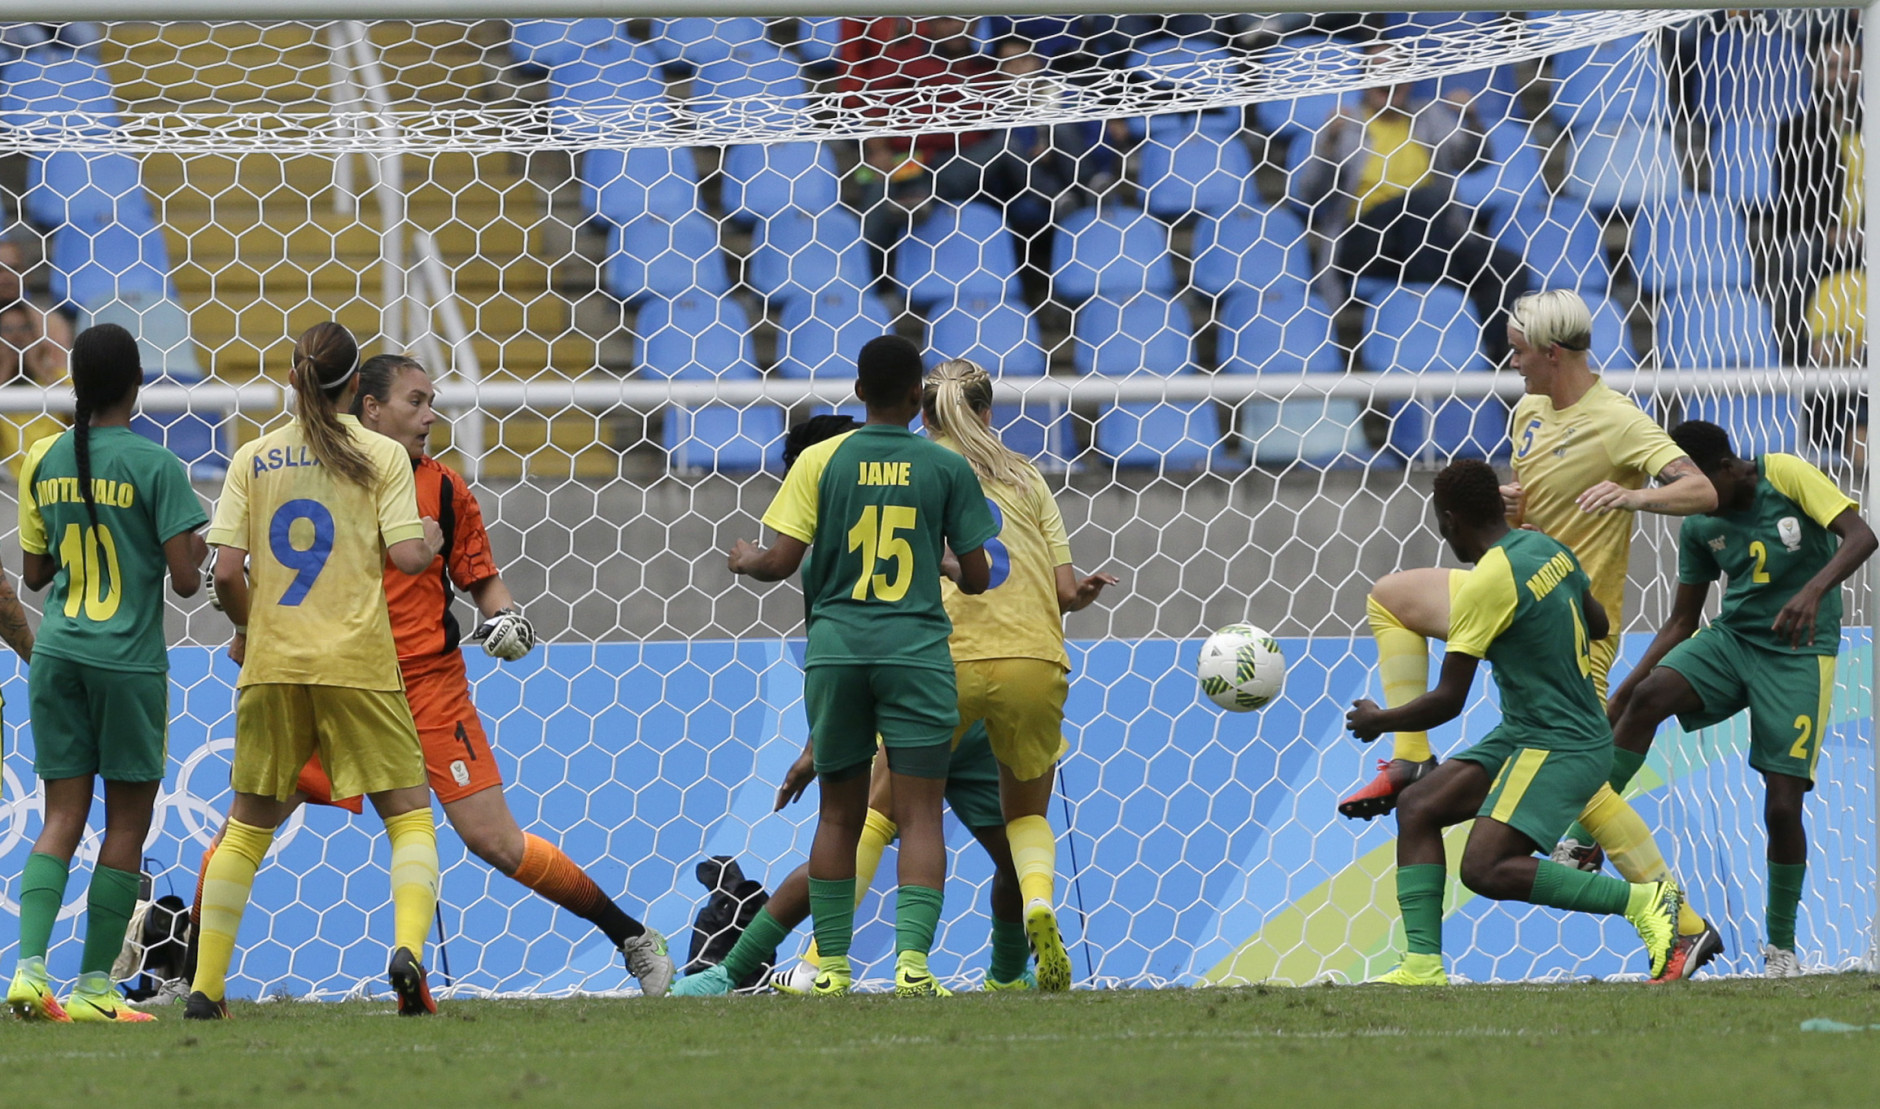 Sweden's Nilla Fischer scores her team's first goal during the opening match of the Women's Olympic Football Tournament between Sweden and South Africa at the Rio Olympic Stadium in Rio de Janeiro, Brazil, Wednesday, Aug. 3, 2016. (AP Photo/Leo Correa)